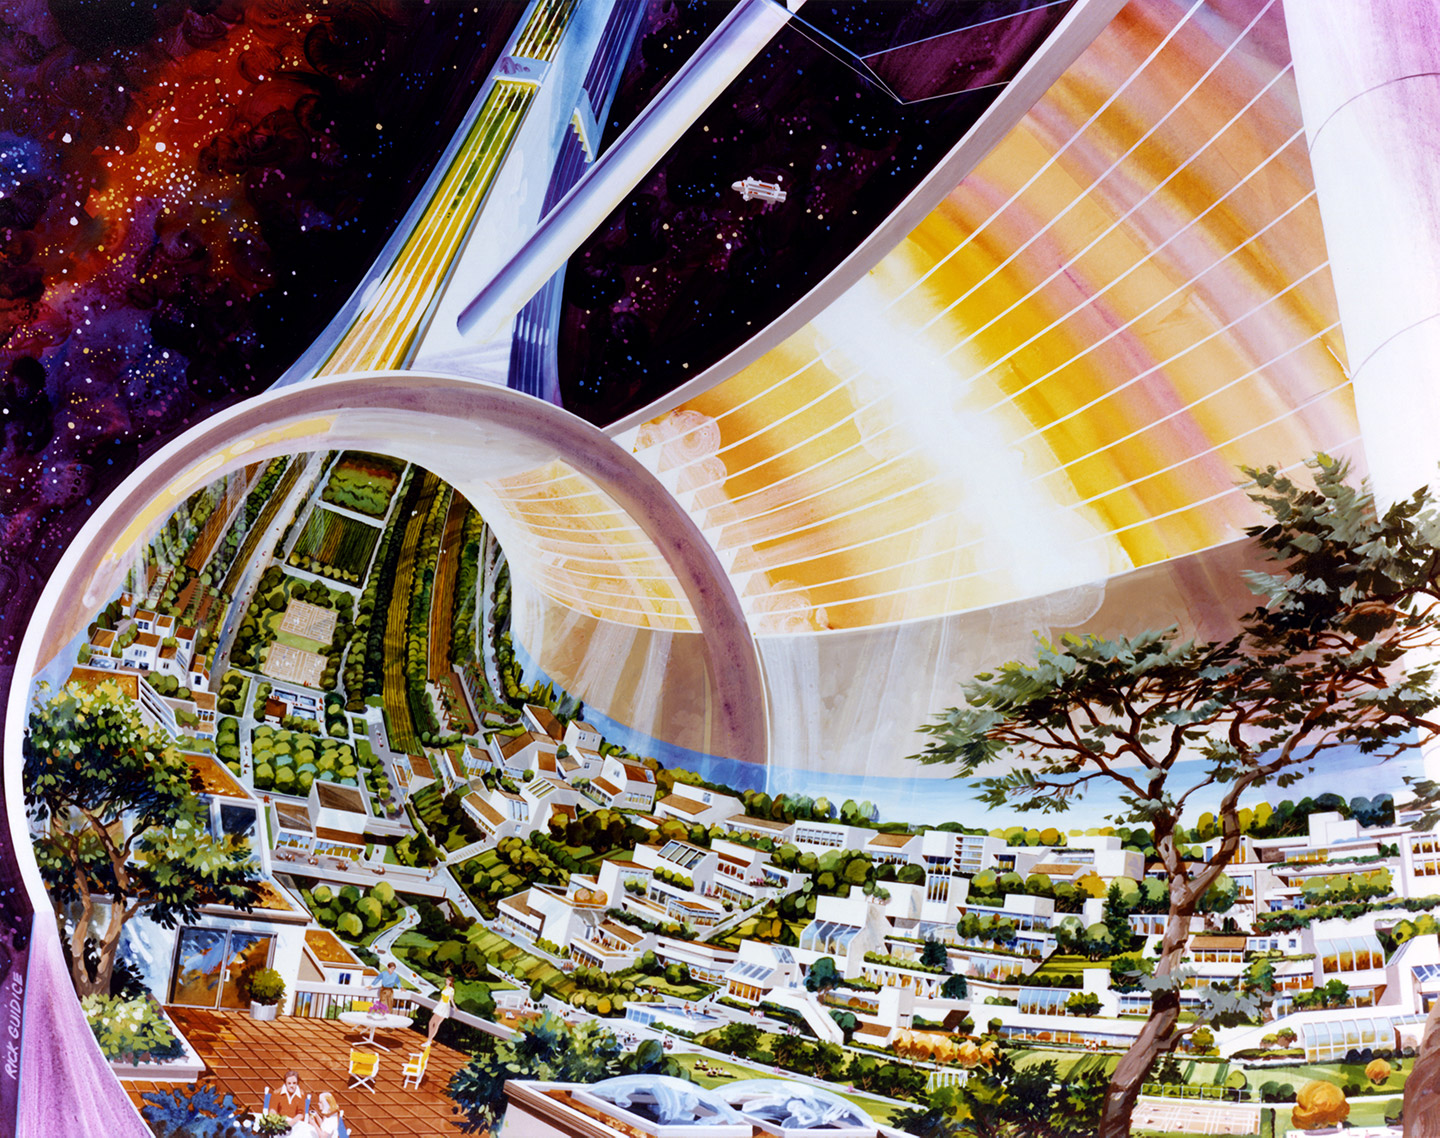 A painting from the 1970's envisioning a space colony in outer space.